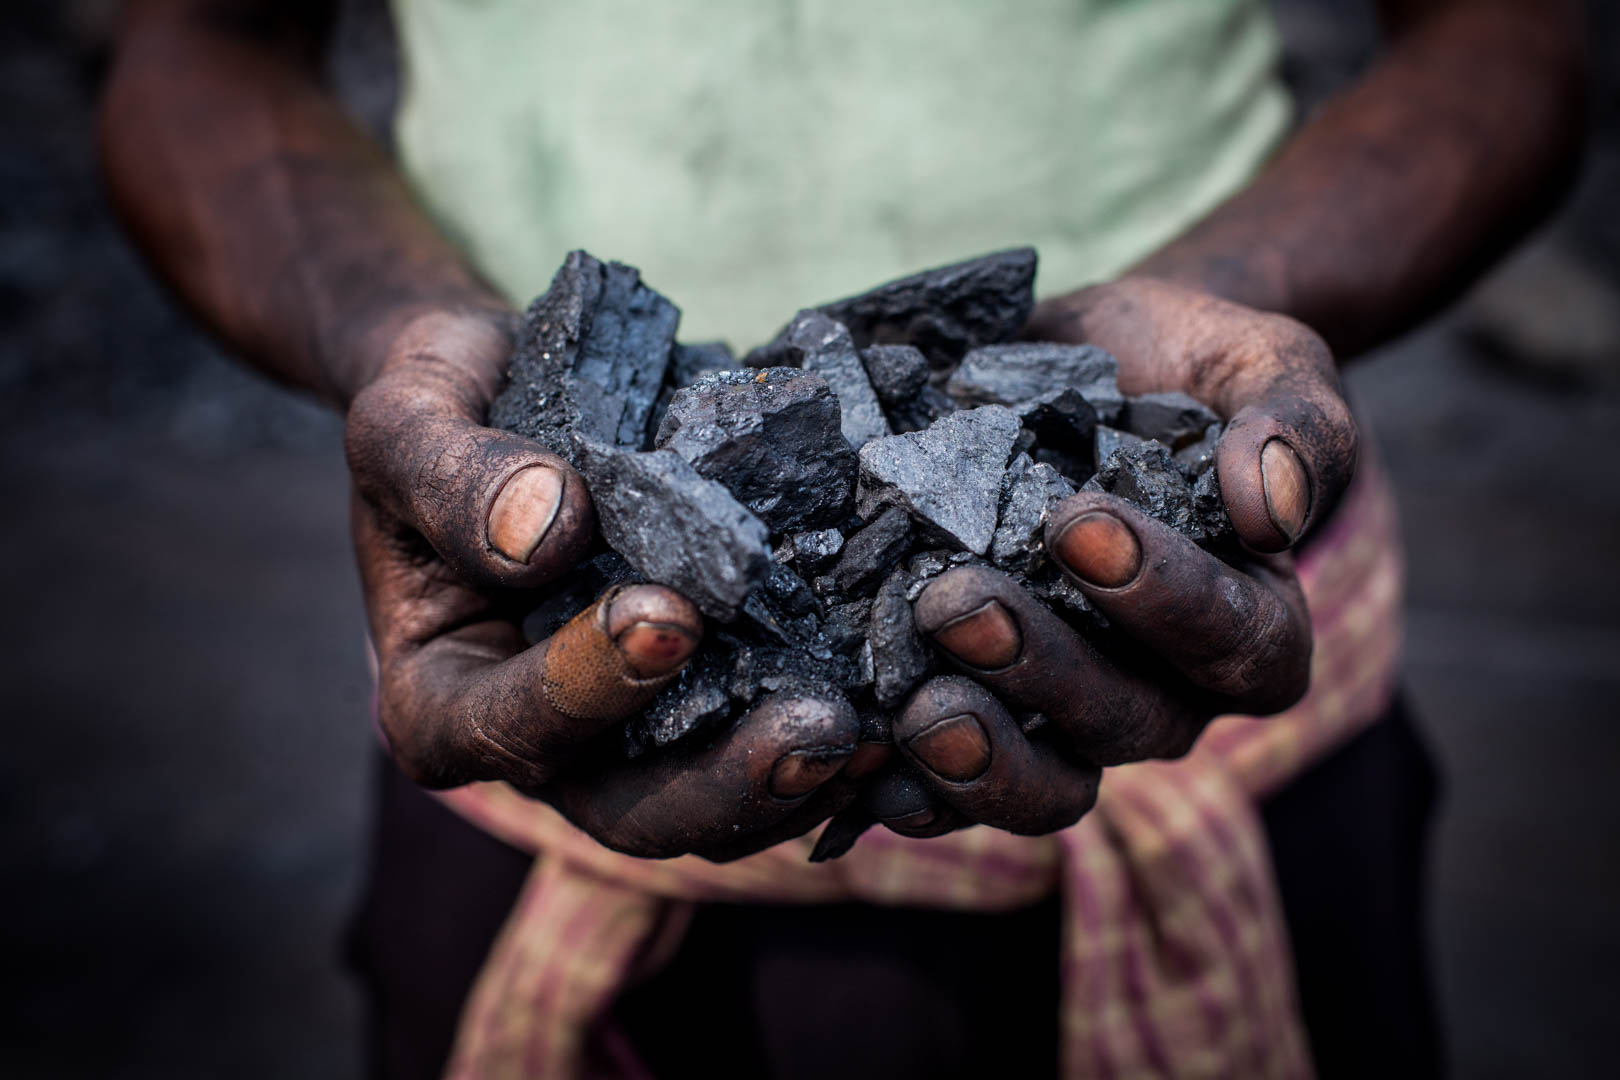 A worker shows a pile of coal that he is holding between his hands.